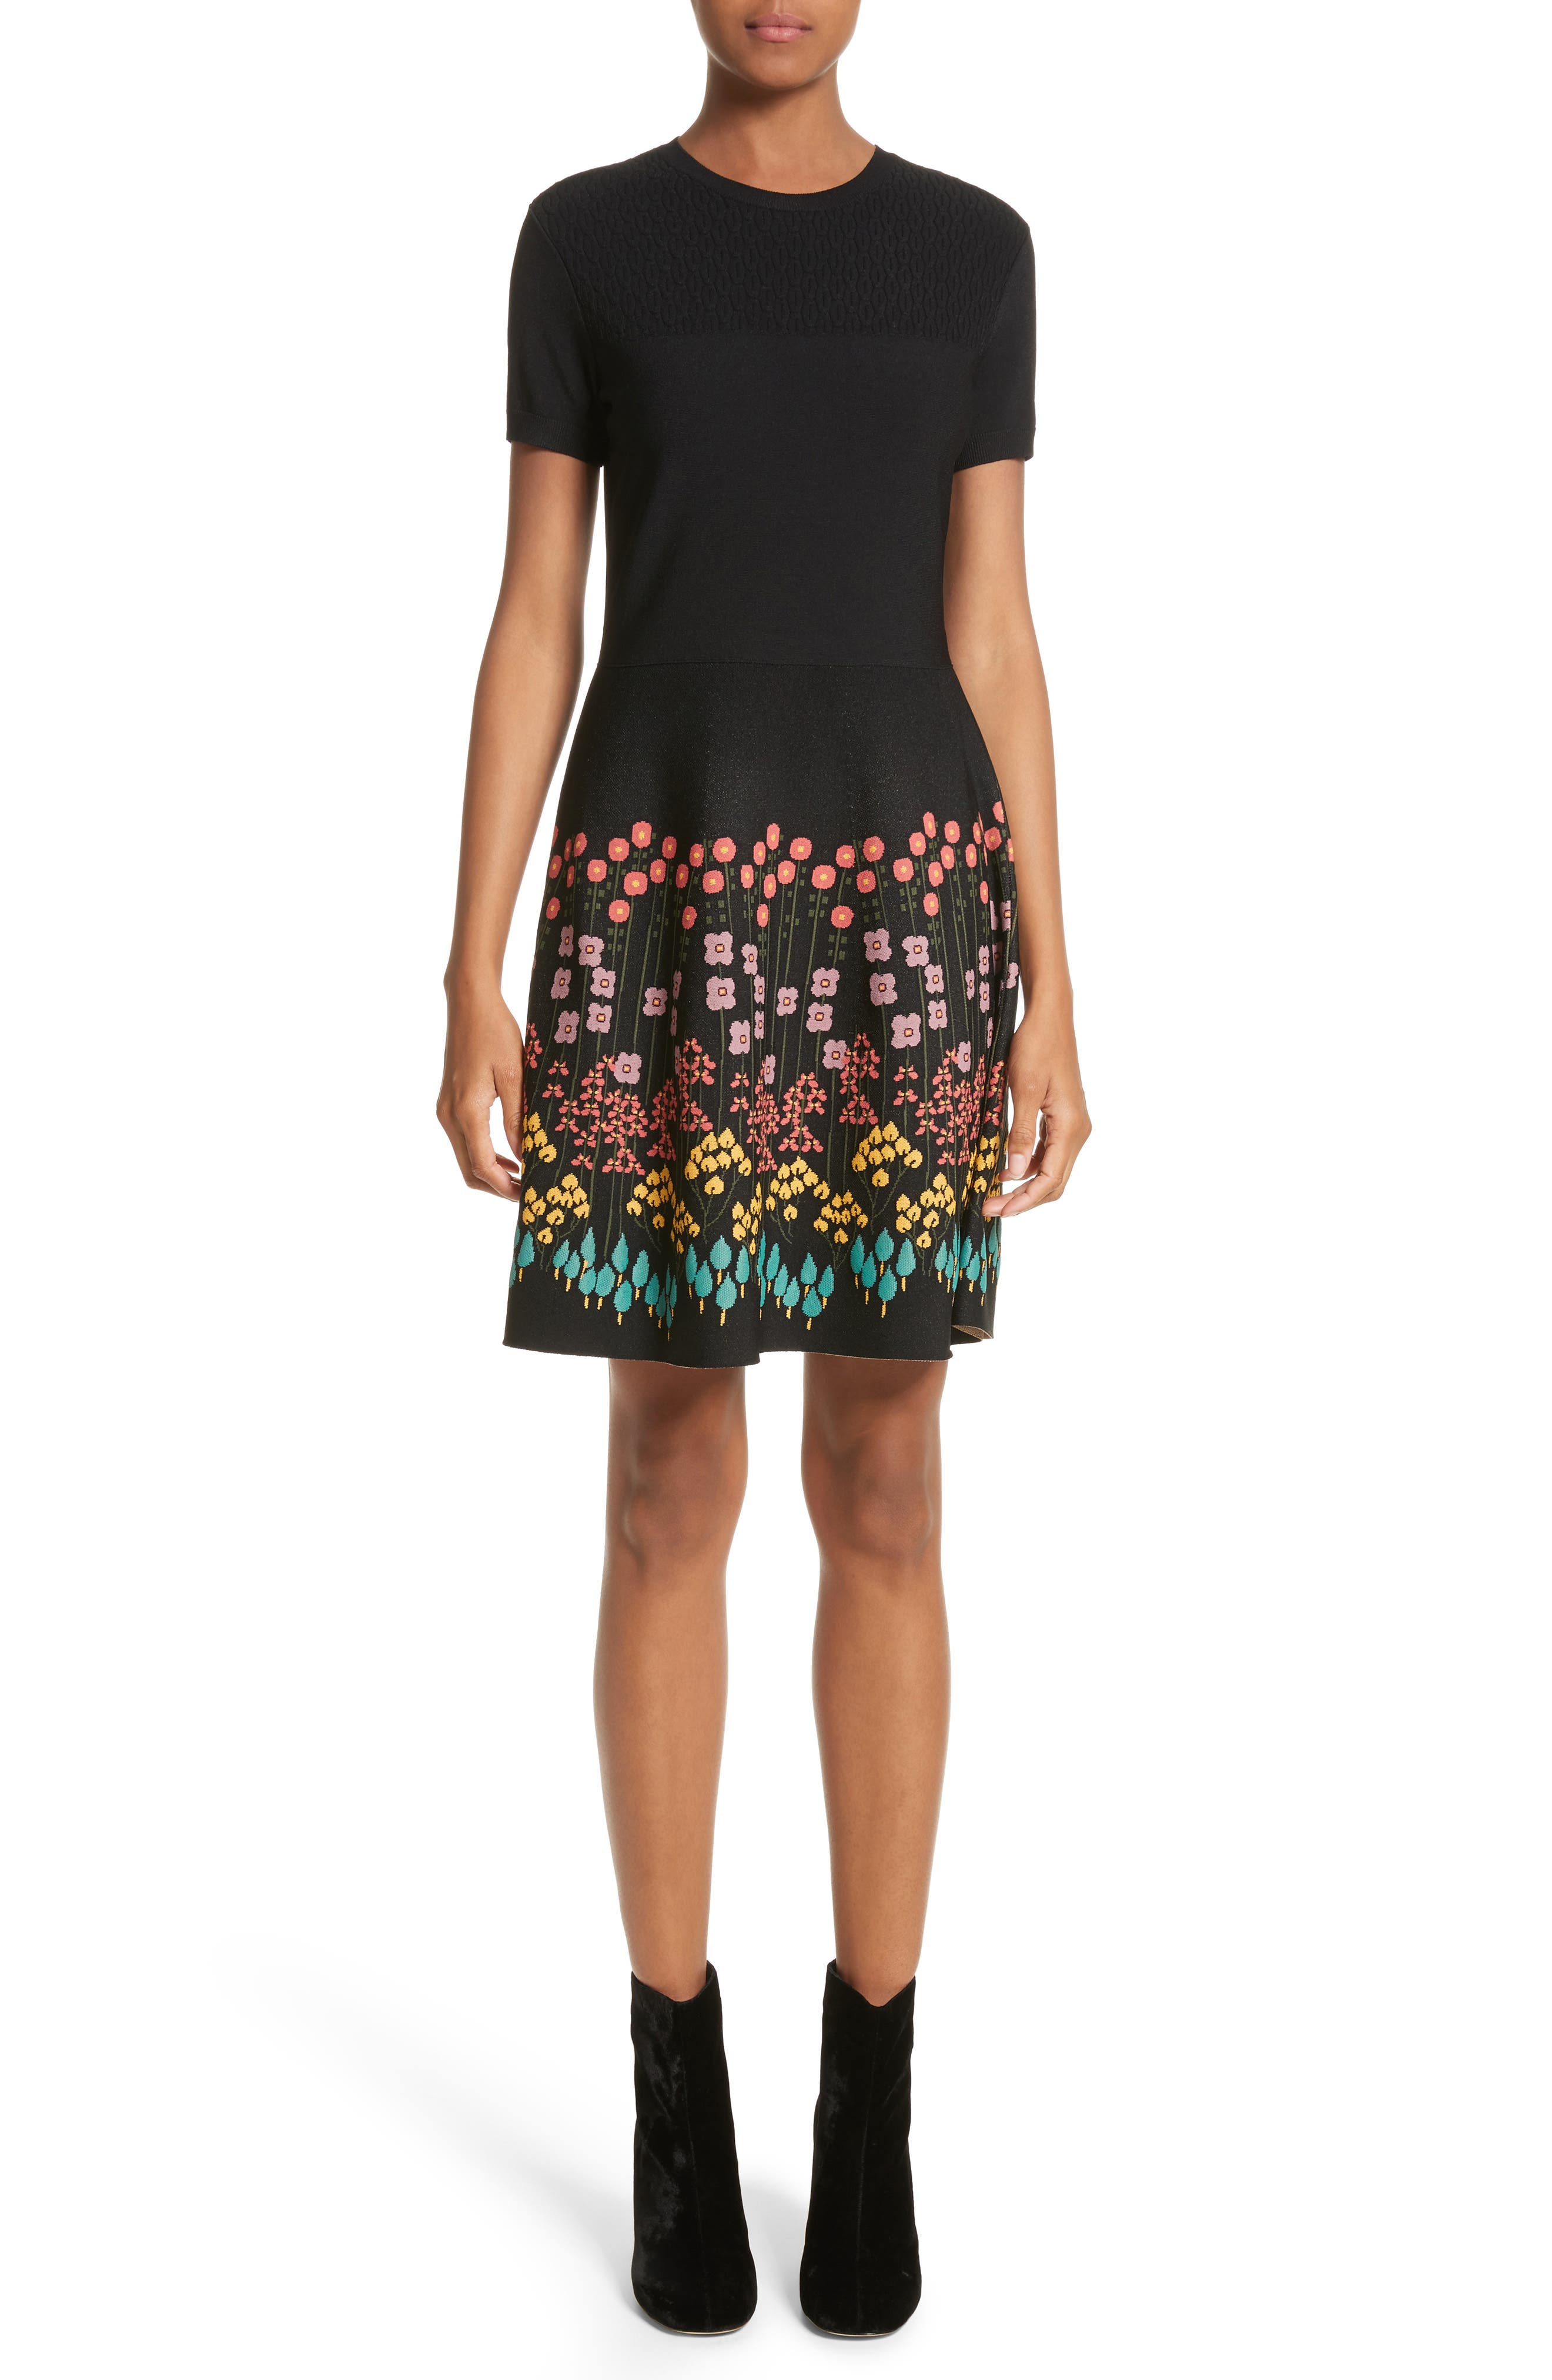 Alternate Image 1 Selected - Valentino Floral Jacquard Knit Dress